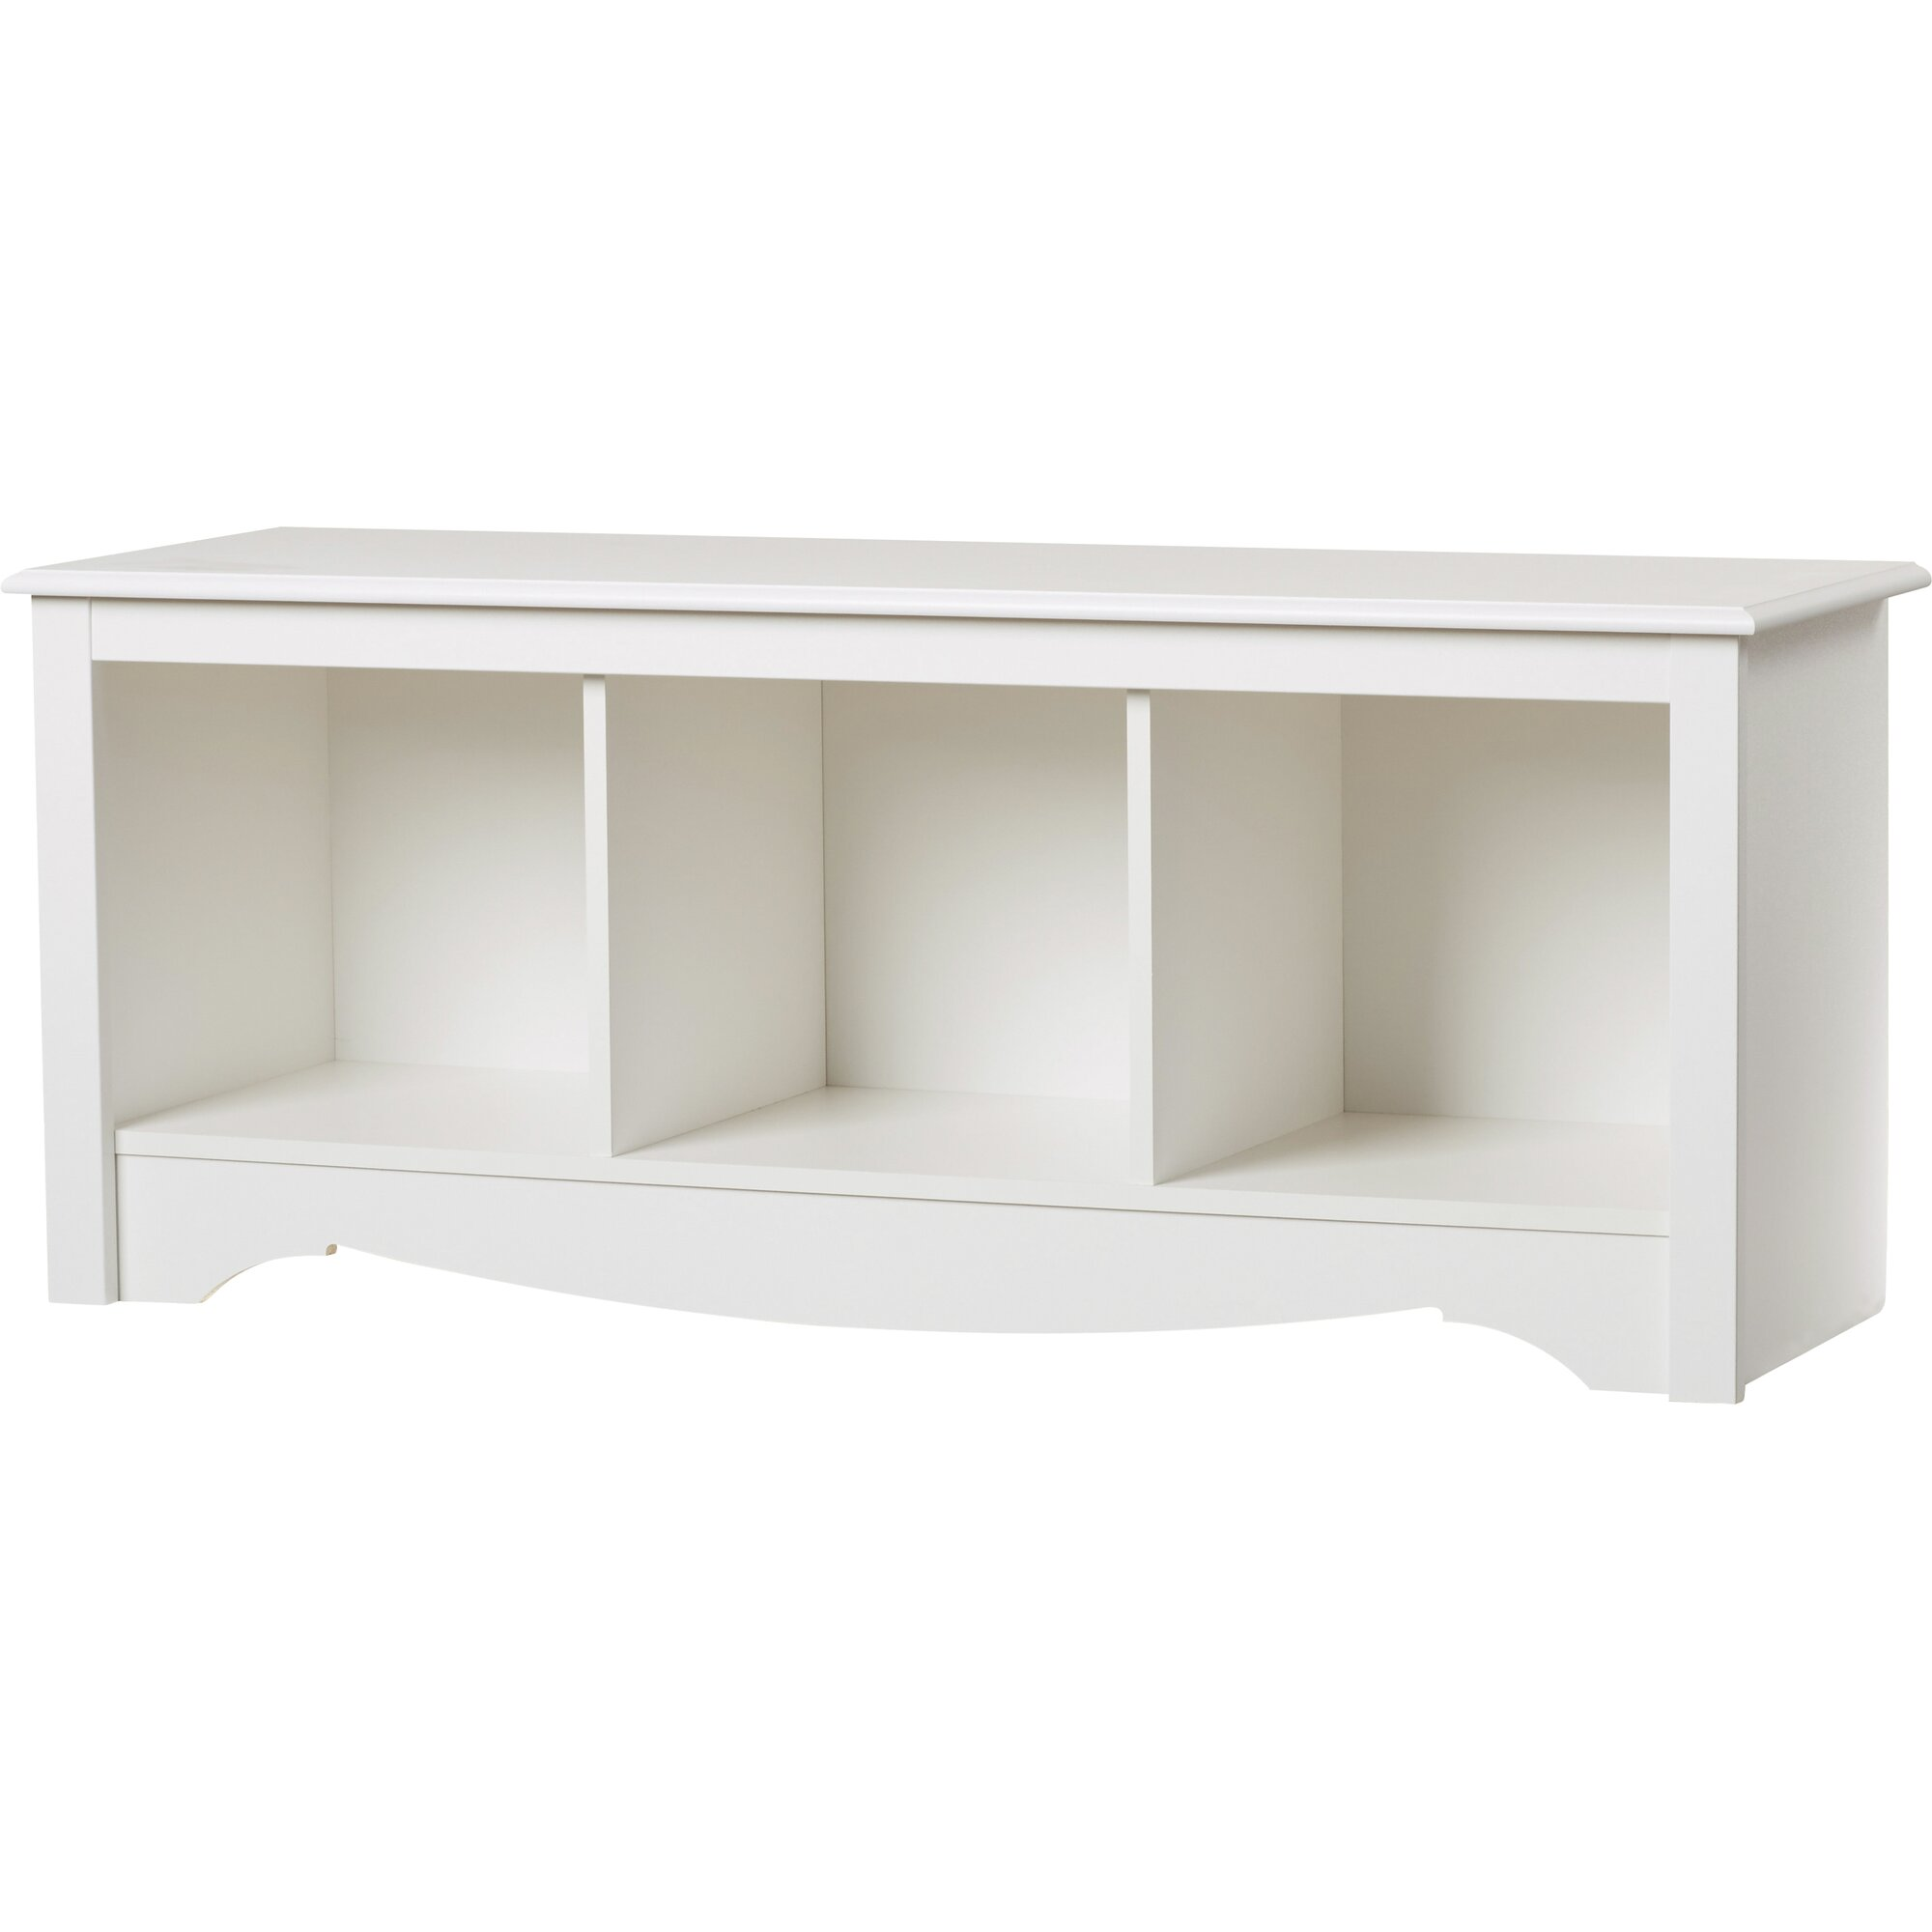 sybil storage bedroom bench reviews birch lane